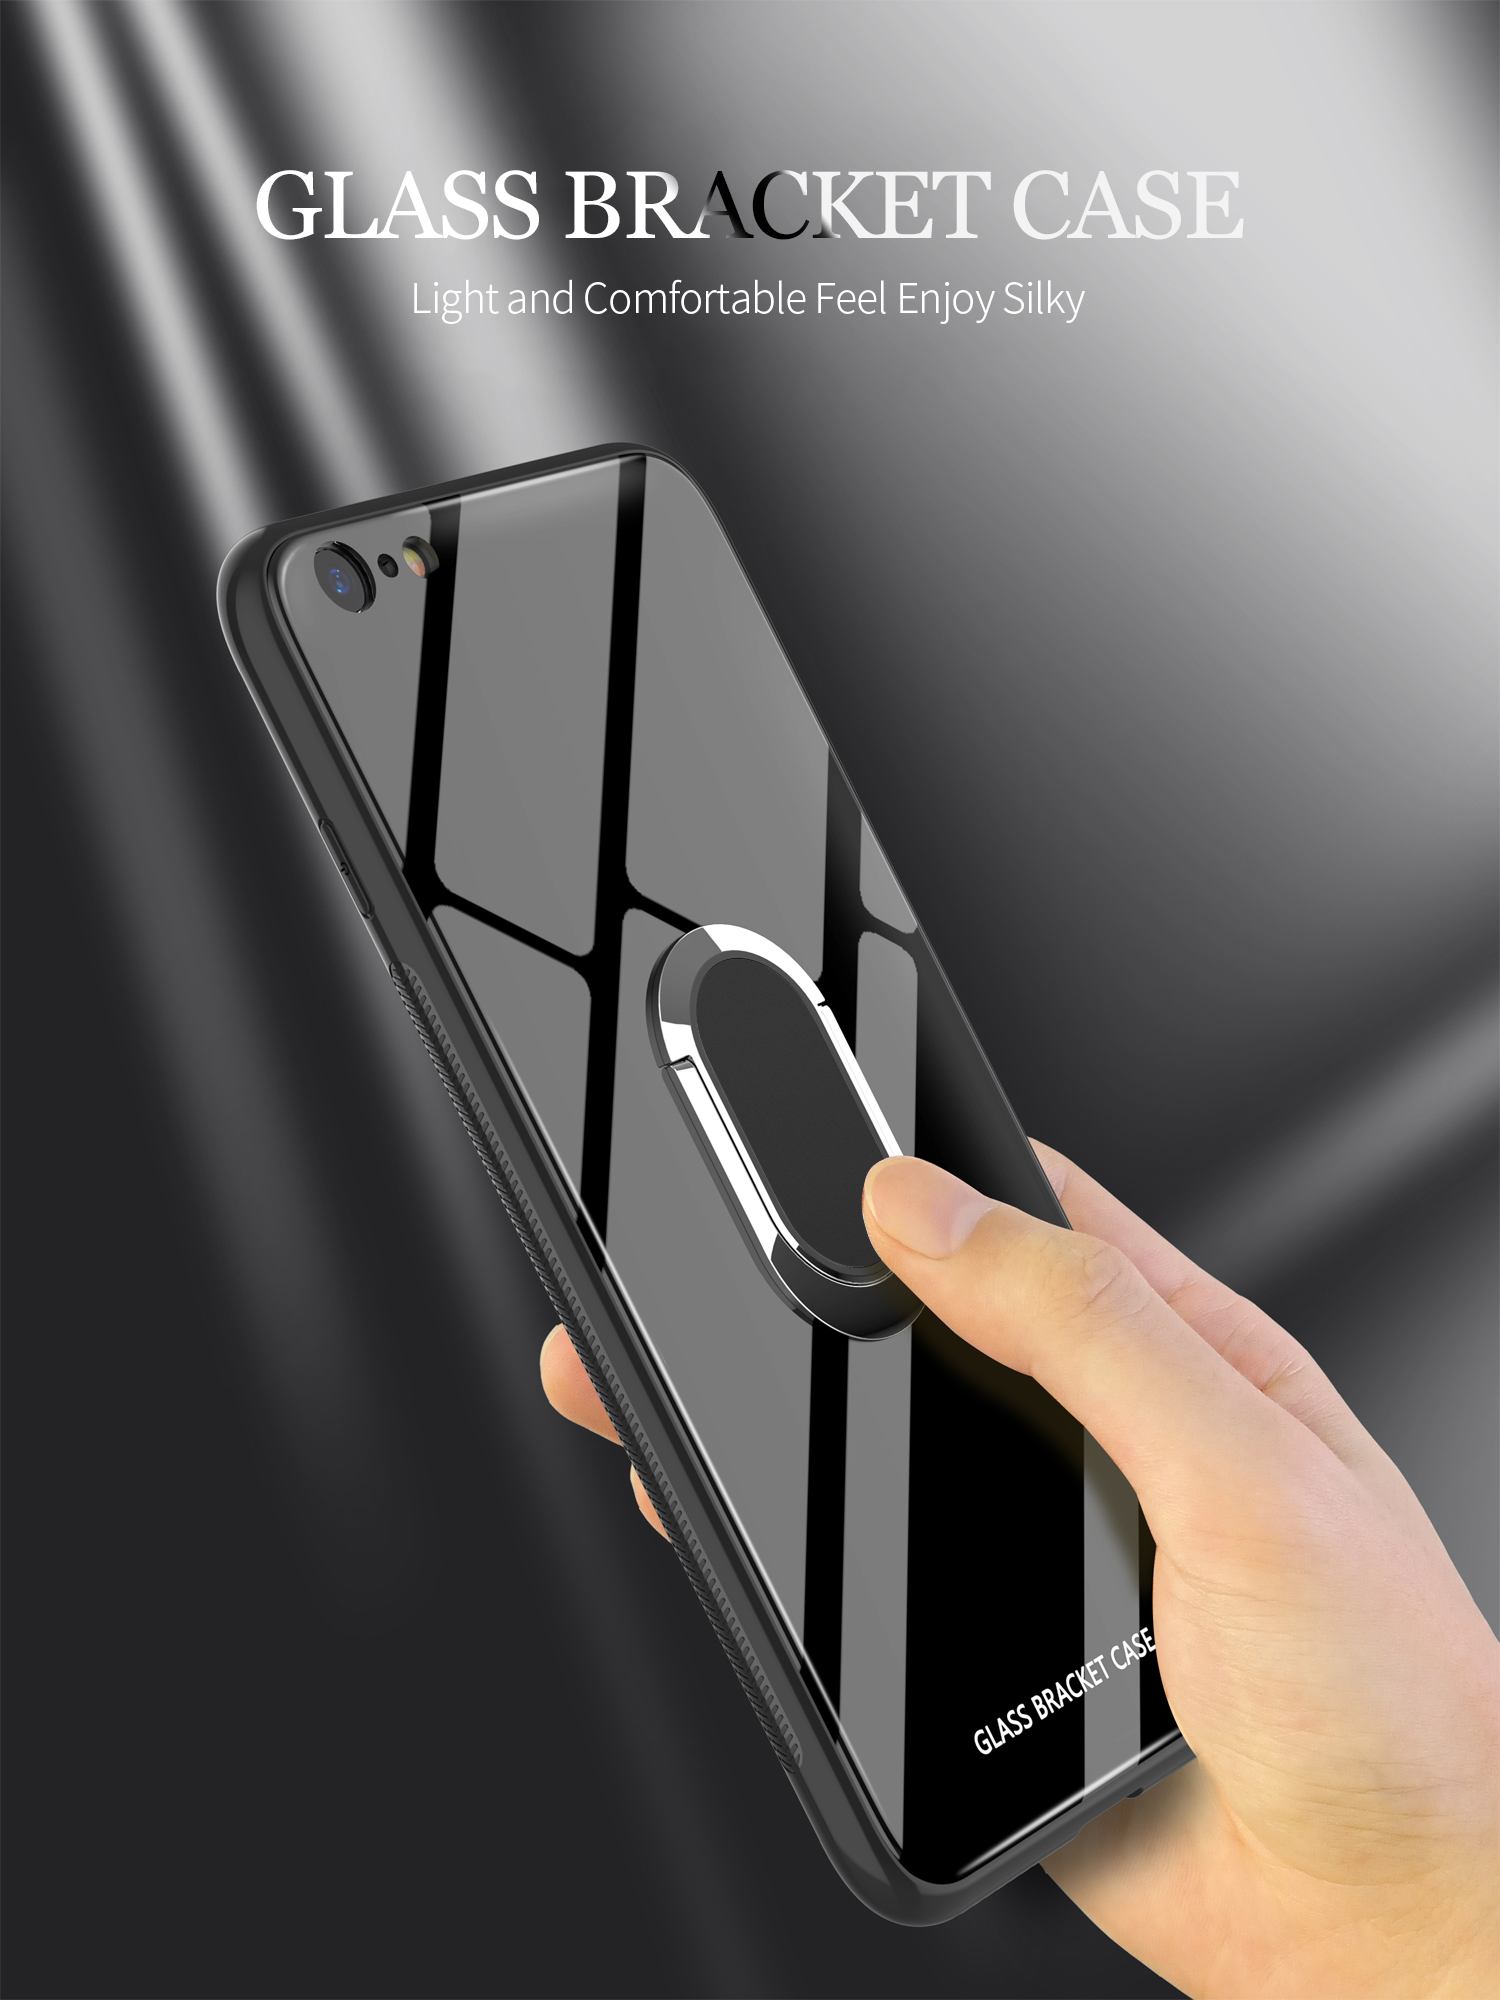 Bakeey 360° Rotation Ring Kickstand Magnetic Glass Protective Case for iPhone 6/6s/6 Plus/6s Plus